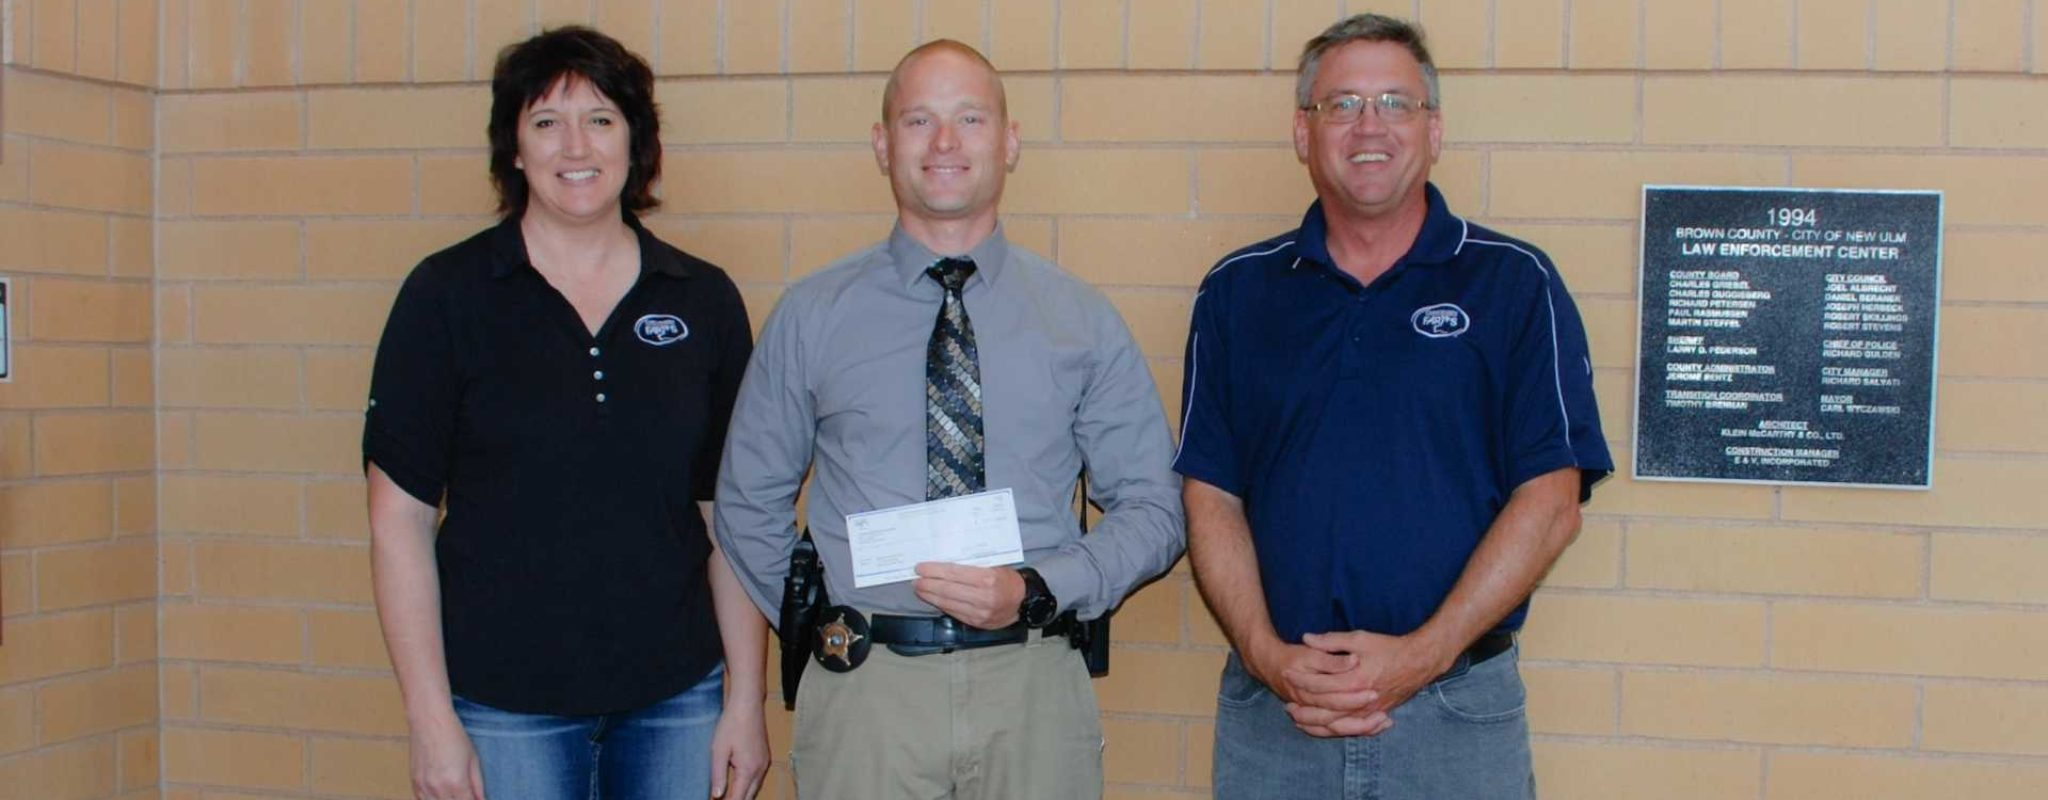 Christensen Farms Thanks Brown County Sheriff's Office Representative for Facilitating Training